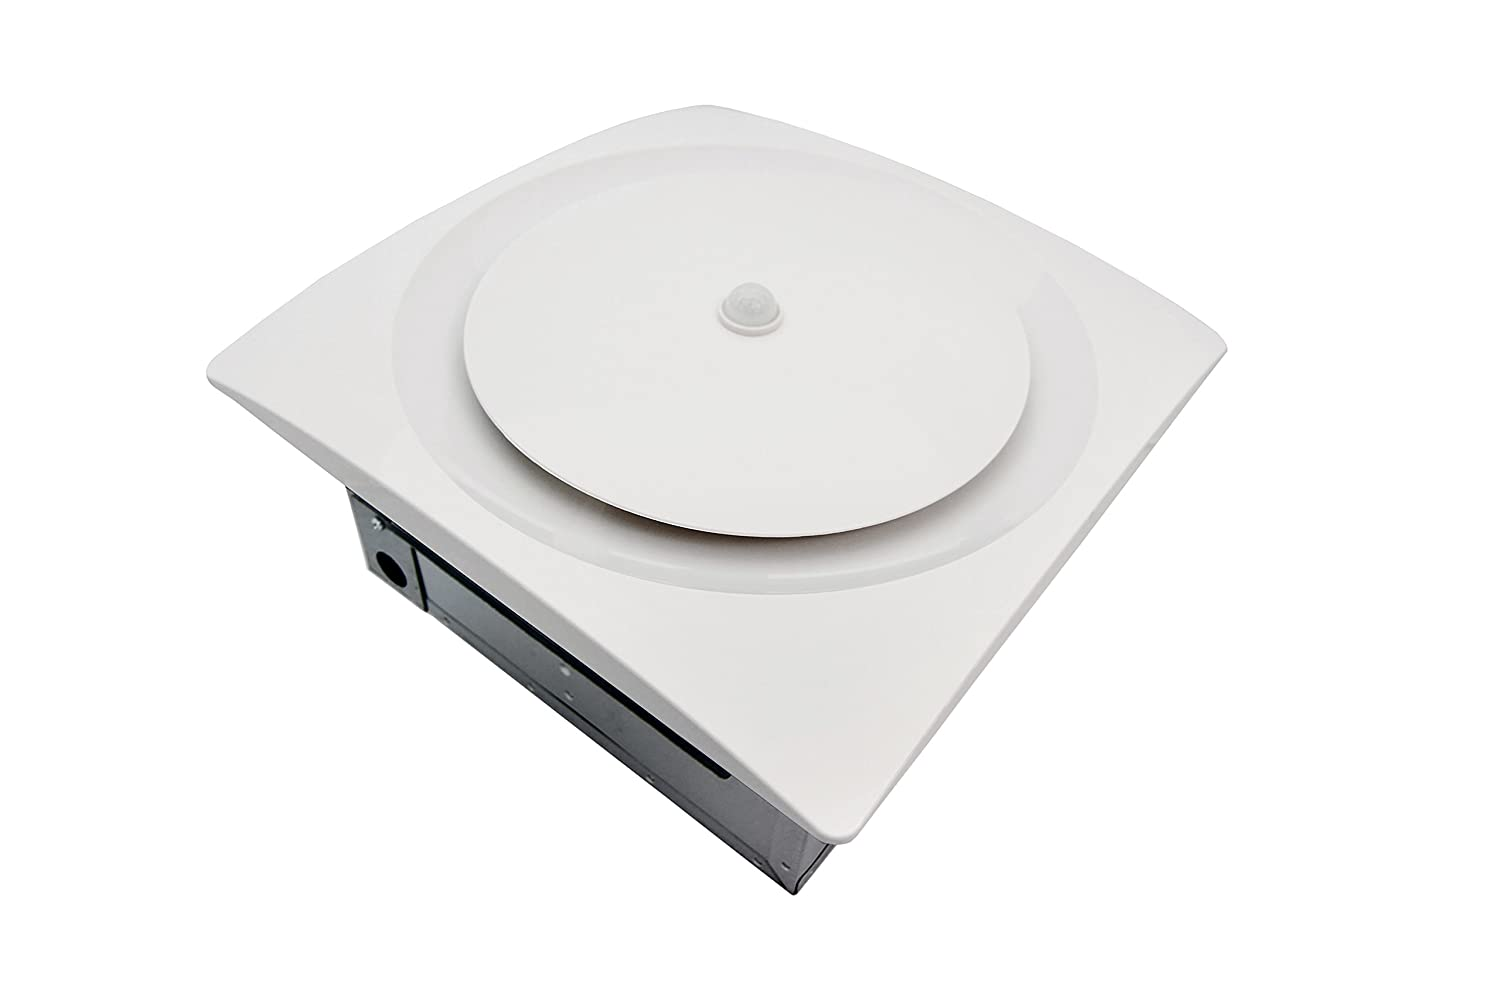 Aero Pure VSF110DCMH-S W Continuous Run Multi-Speed Bath/Laundry Room Fan with Motion and Humidity Sensor, White